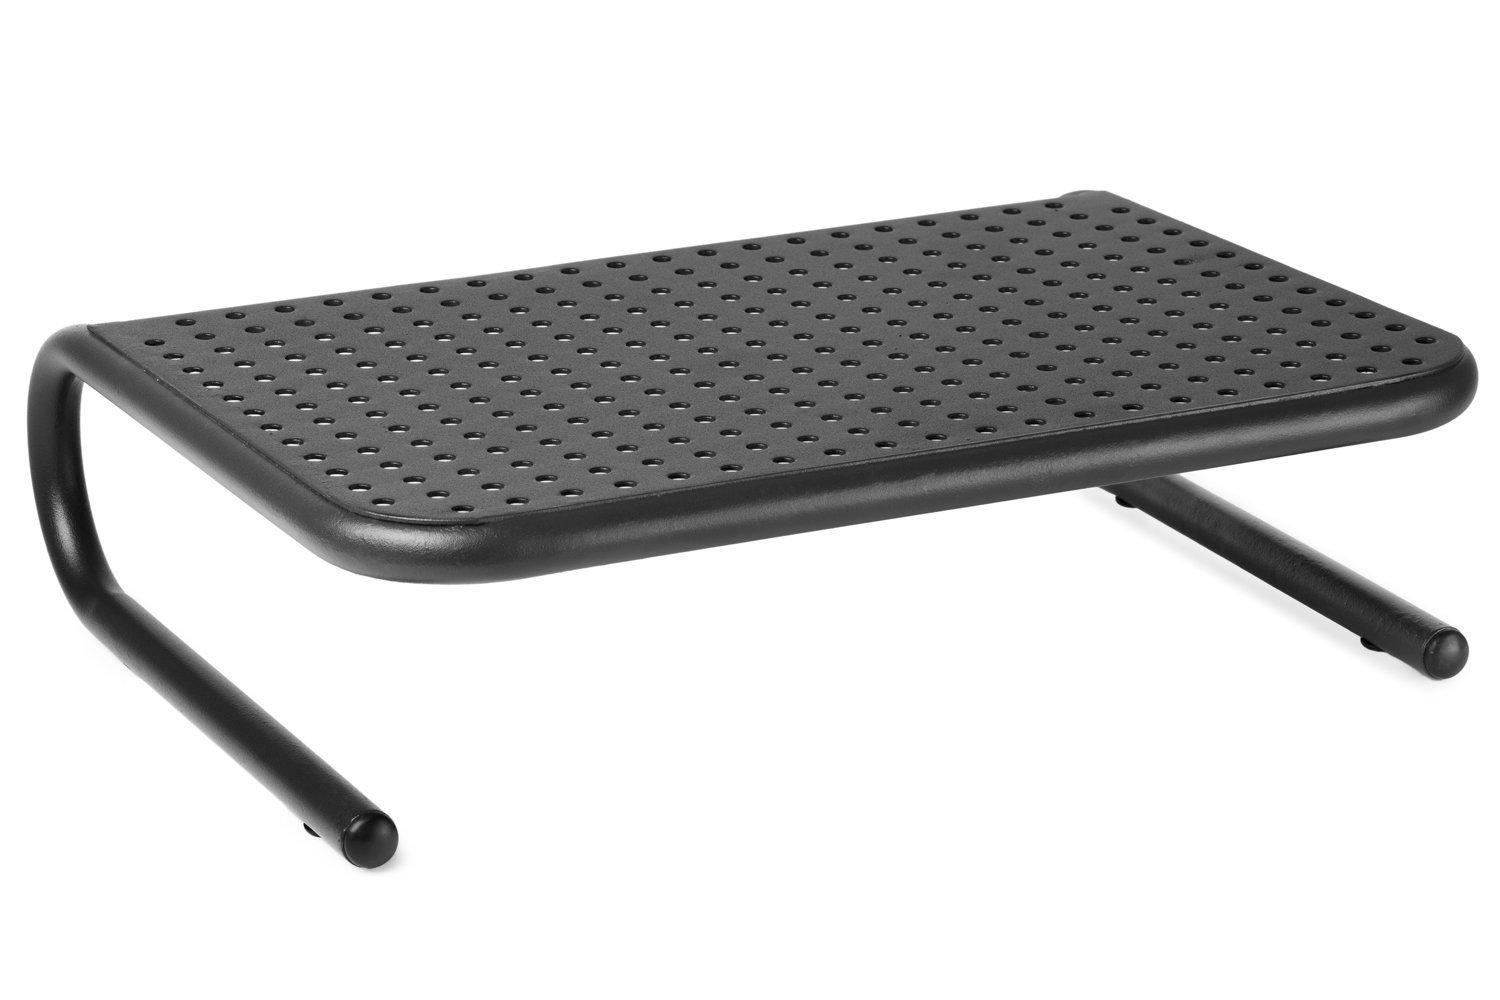 Amazon.com : Halter LZ-309 Vented Metal Monitor Stand ...